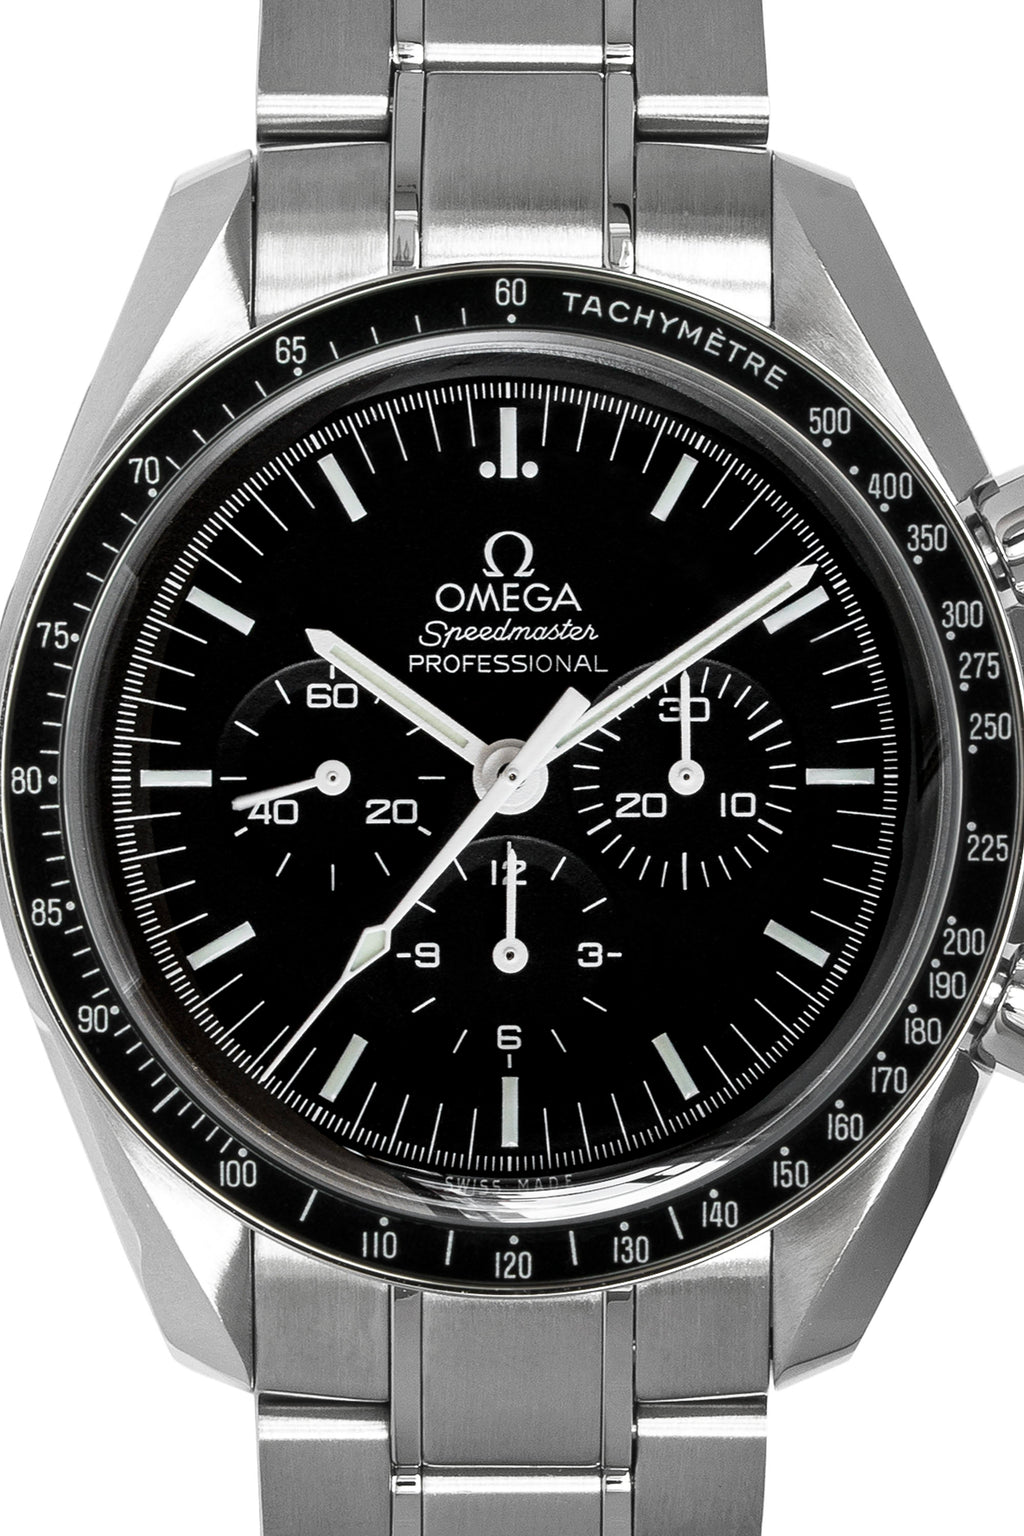 Omega speedmaster watches watchobsession for Omega watch speedmaster